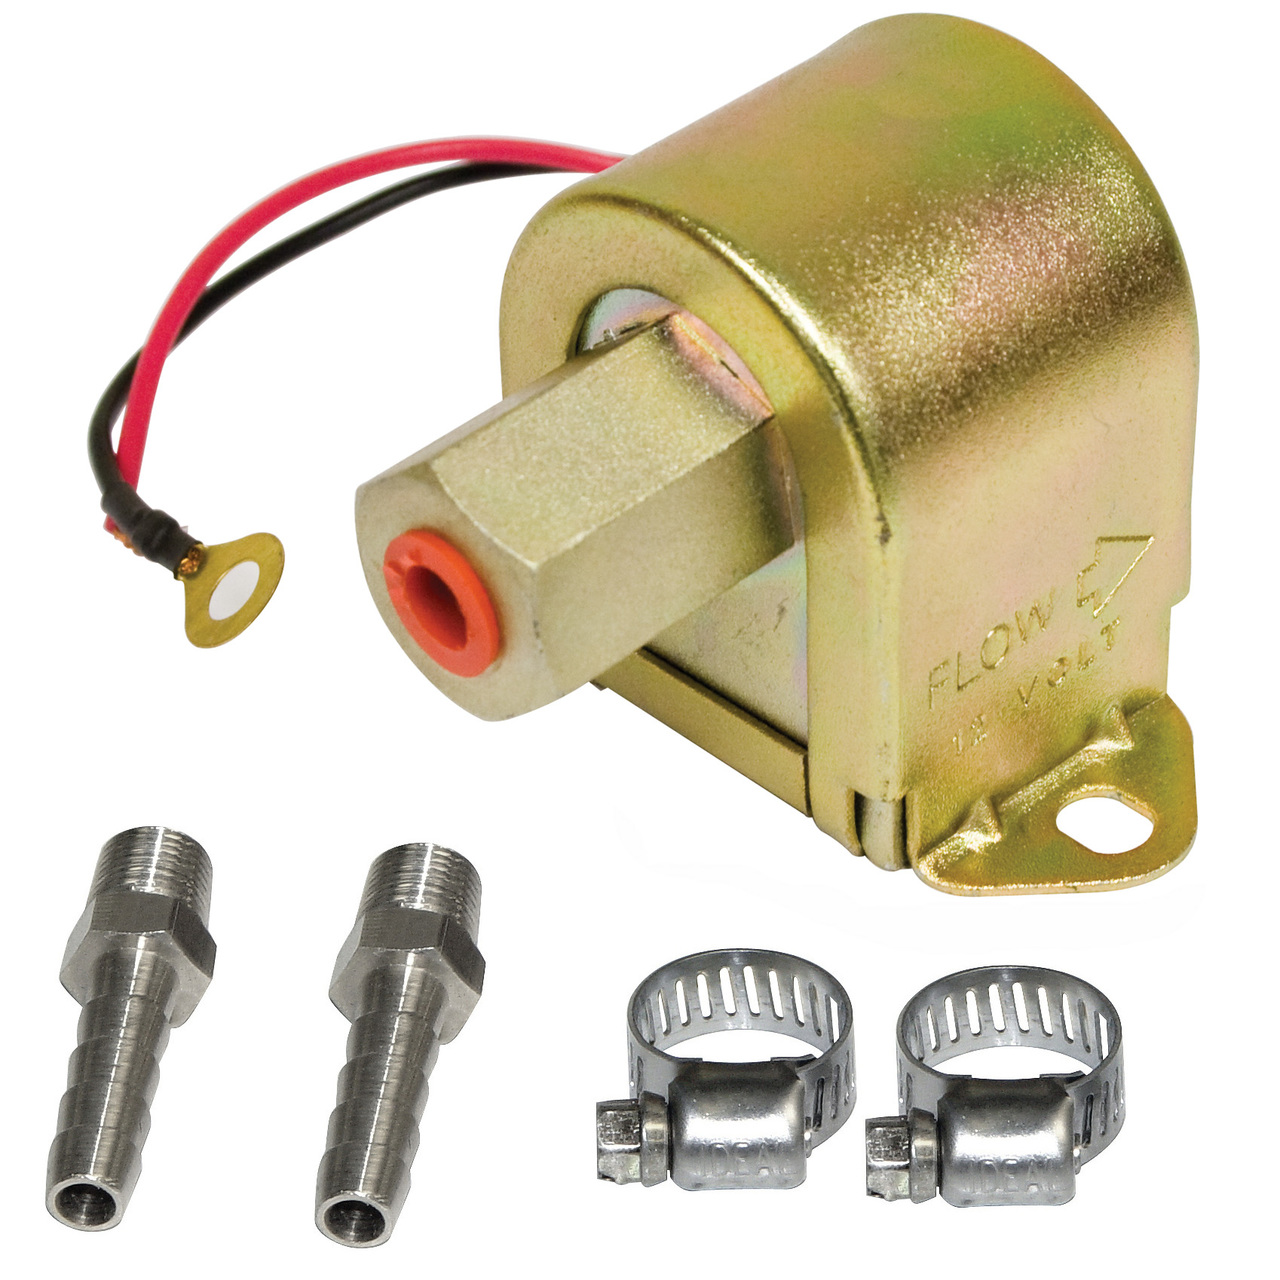 hight resolution of empi 41 2510 8 universal electric fuel pump 1 5 4 psi includes clamps fittings